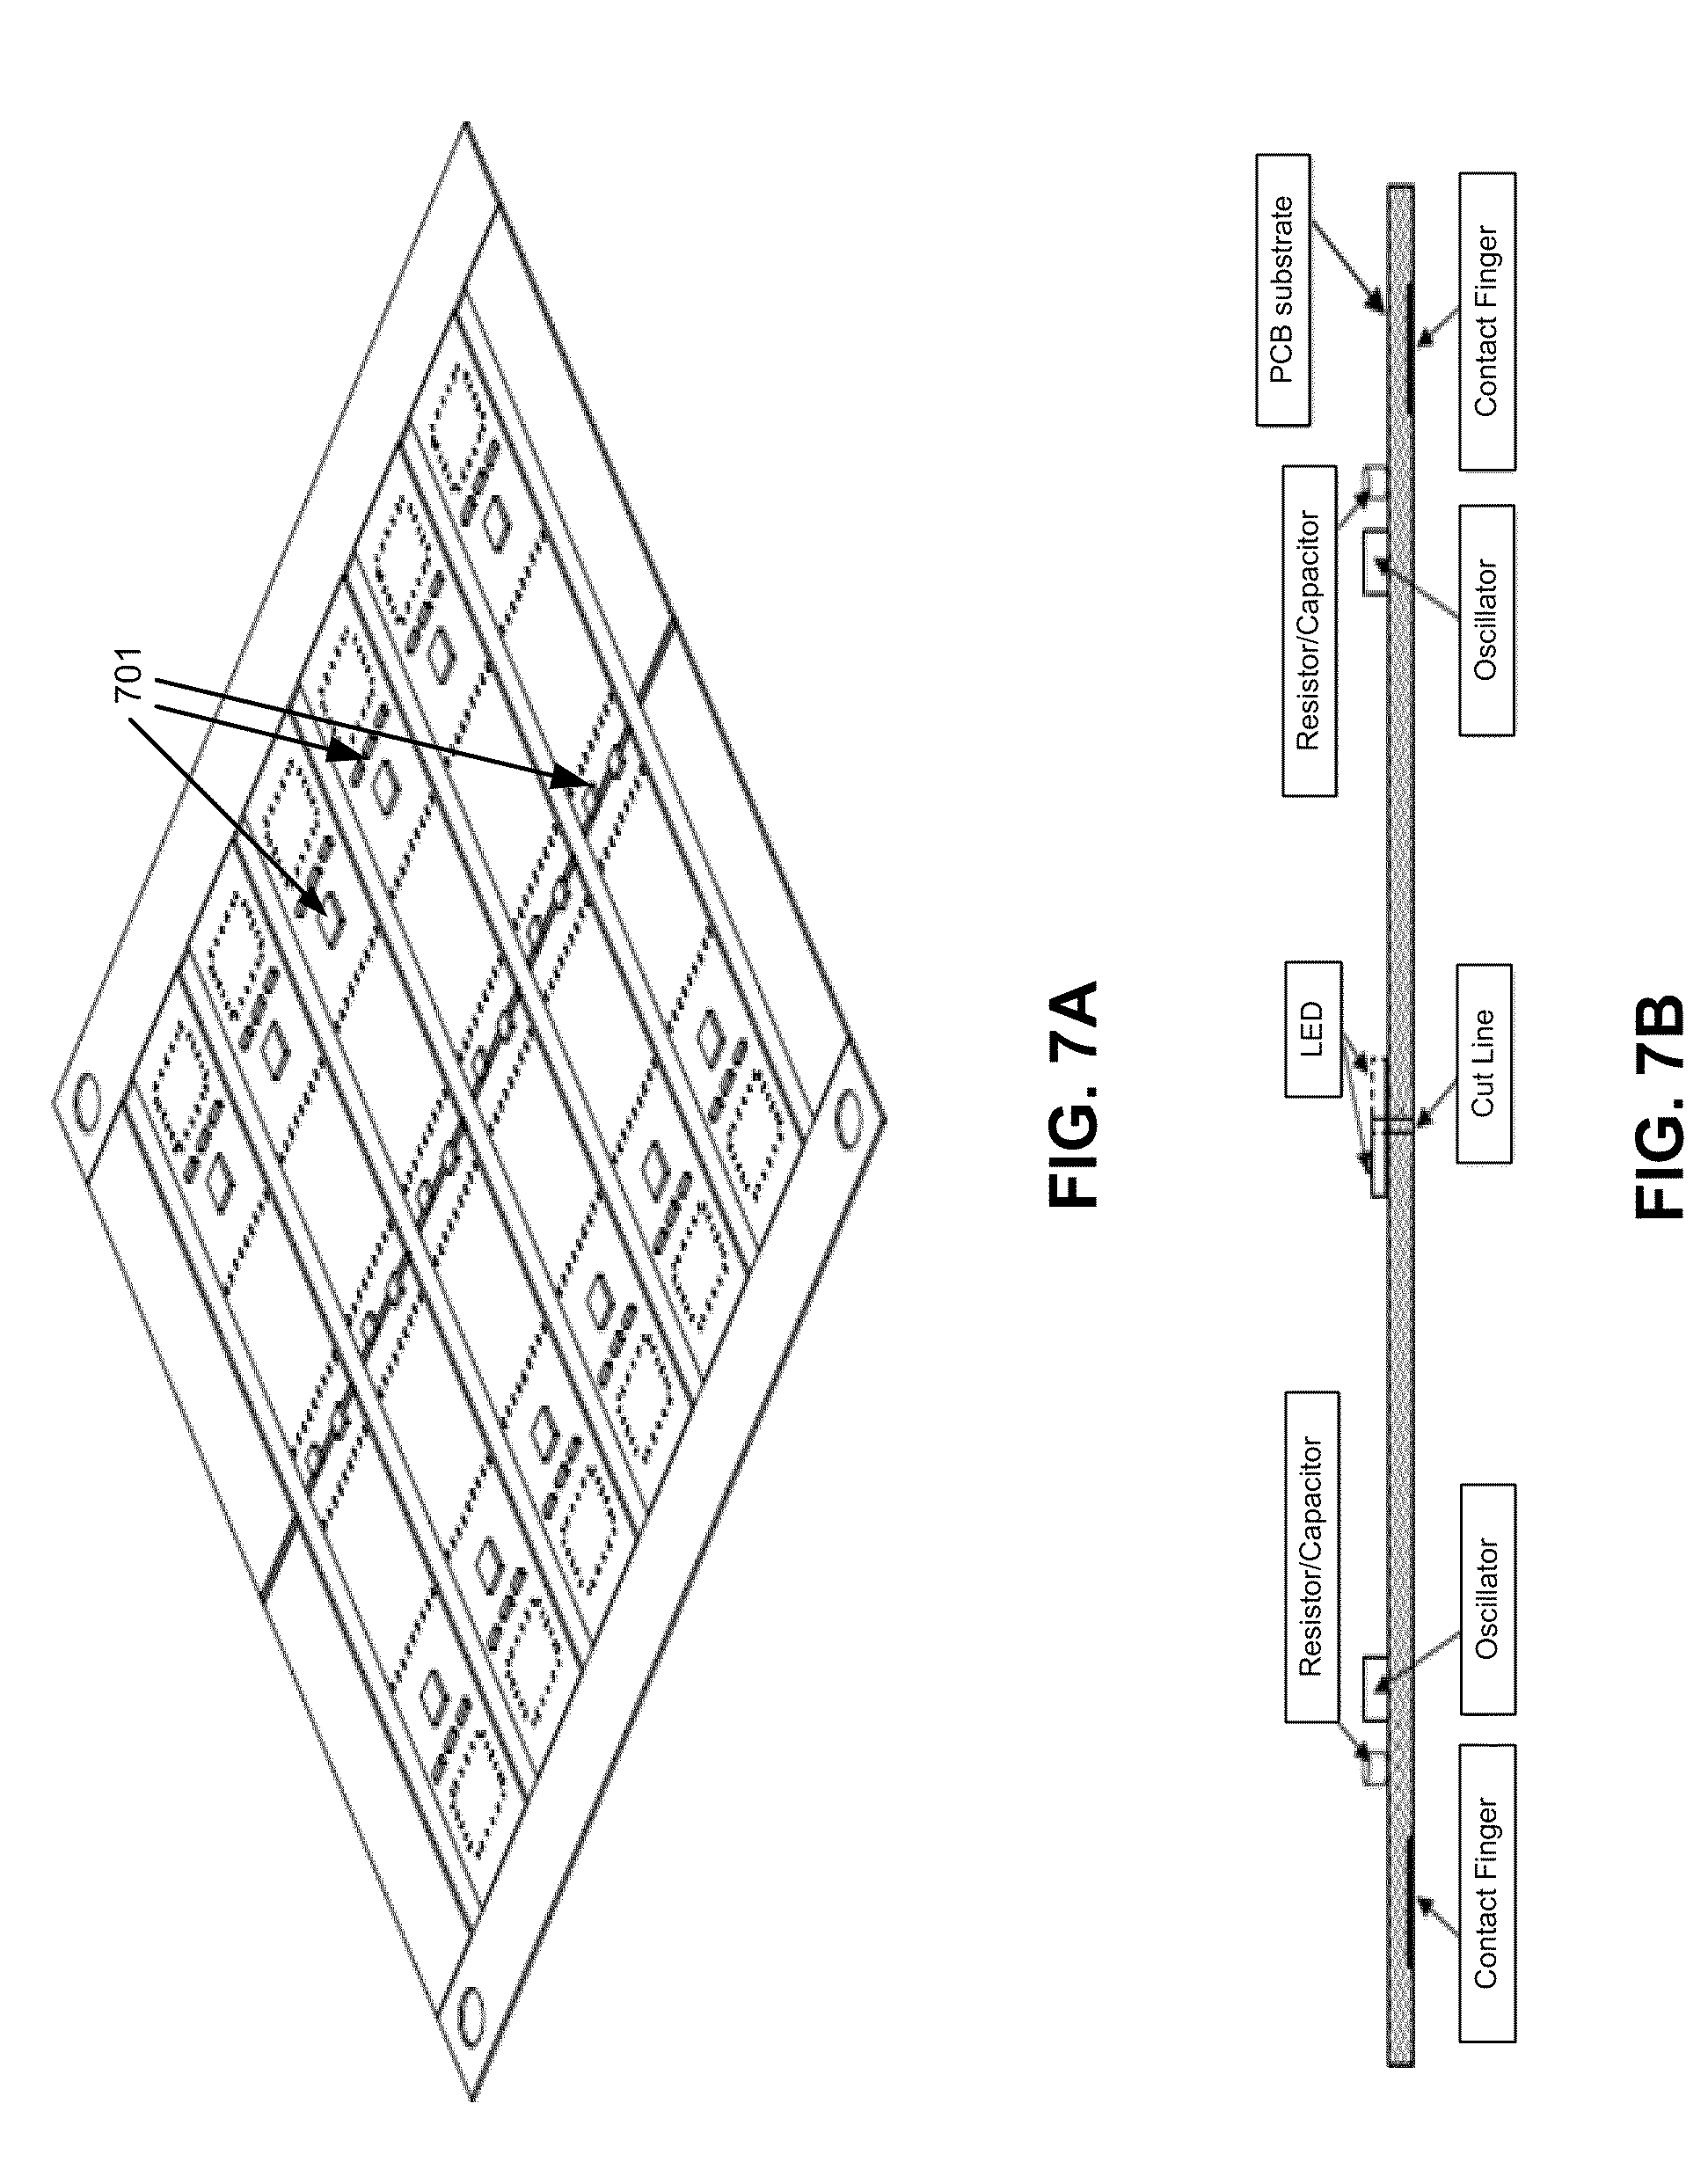 Wall Mount Ether Jack Wiring Diagram Power Wall Jack